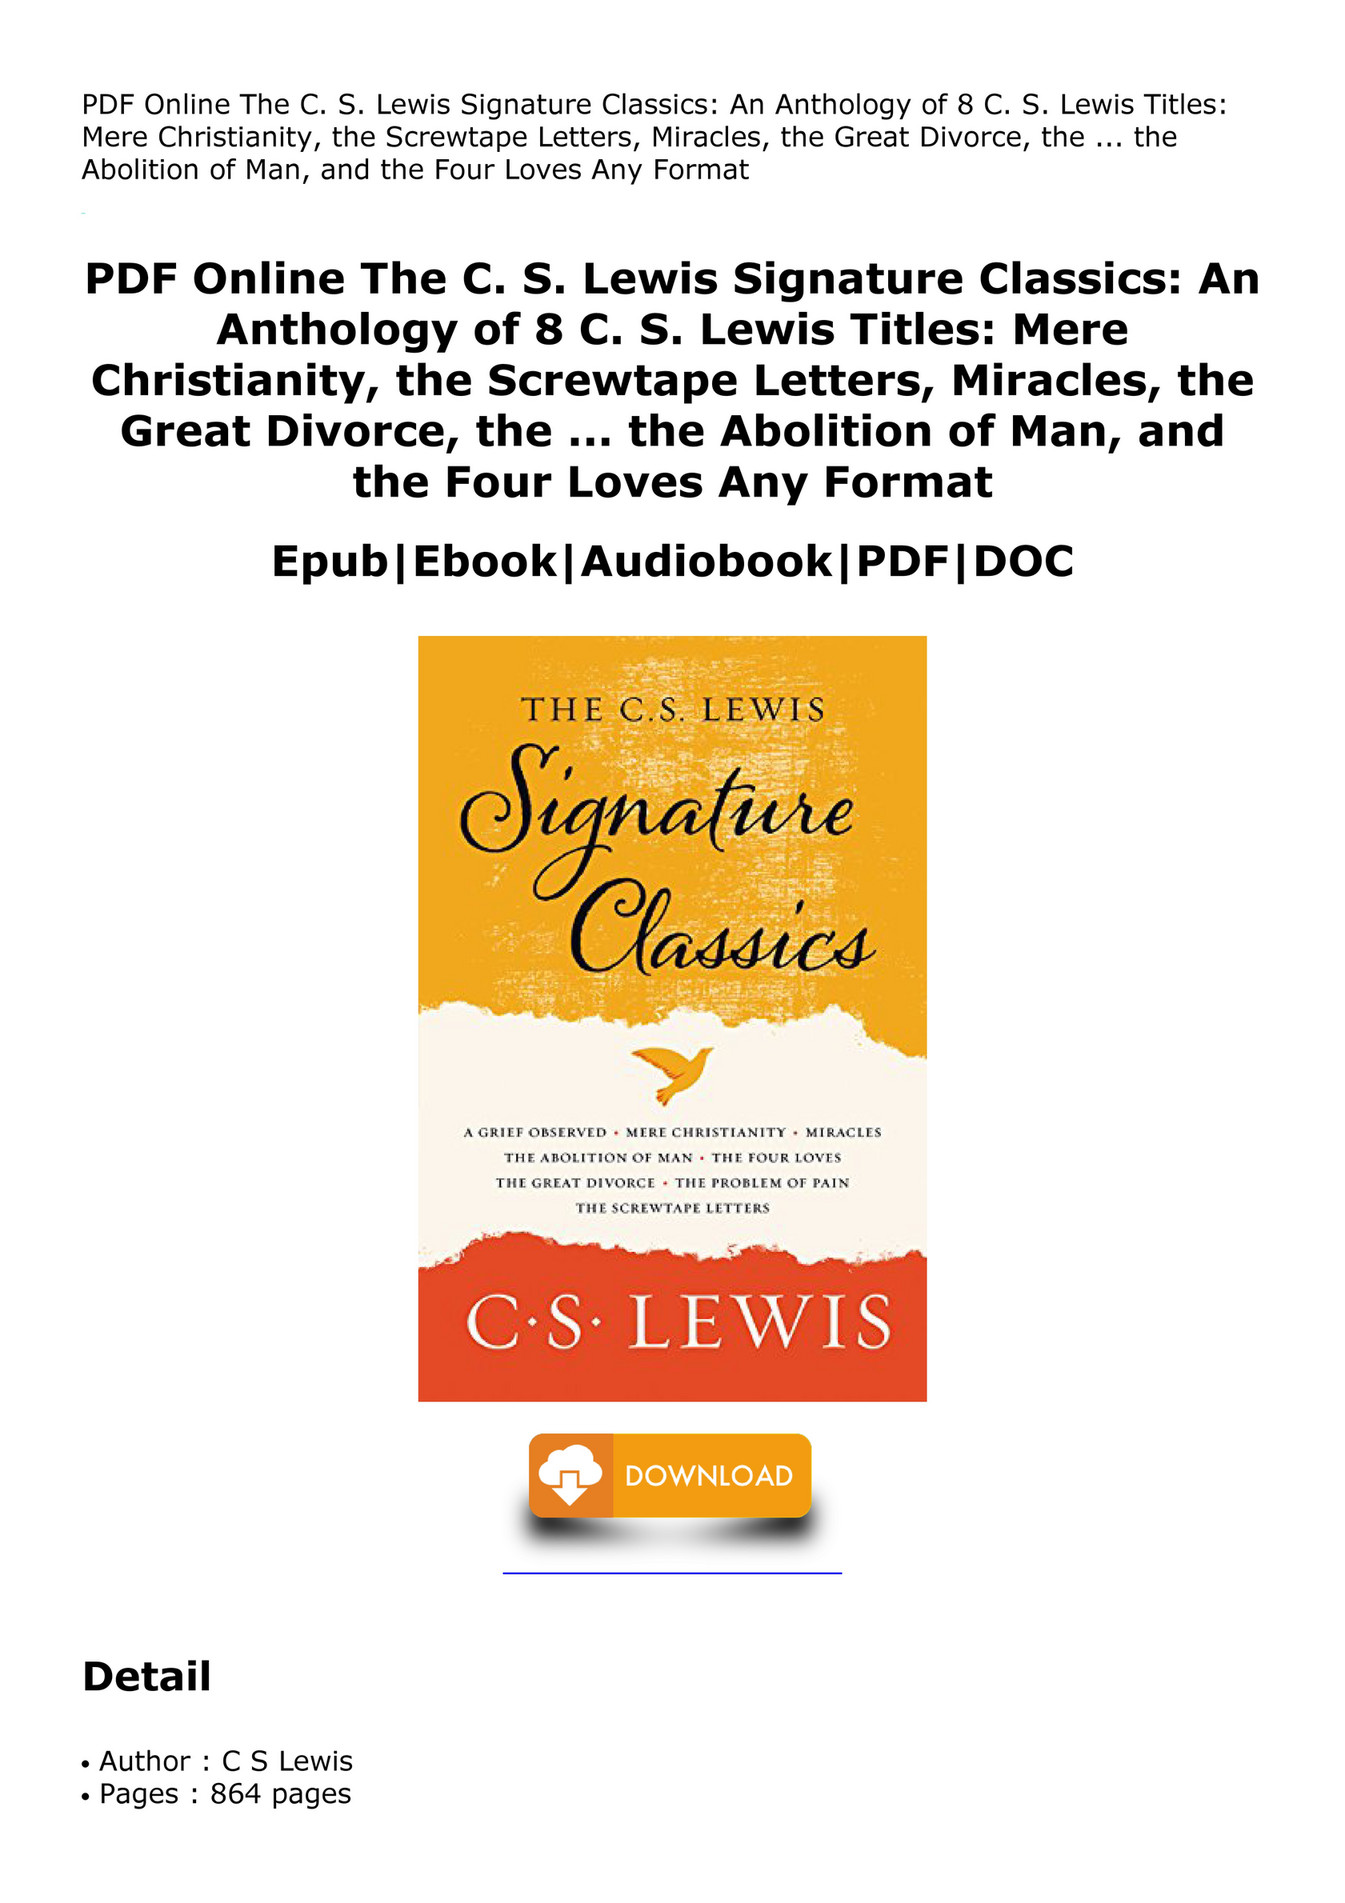 pdf online the c s lewis signature classics an anthology of 8 c s lewis titles mere christianity the screwtape letters miracles the great divorce